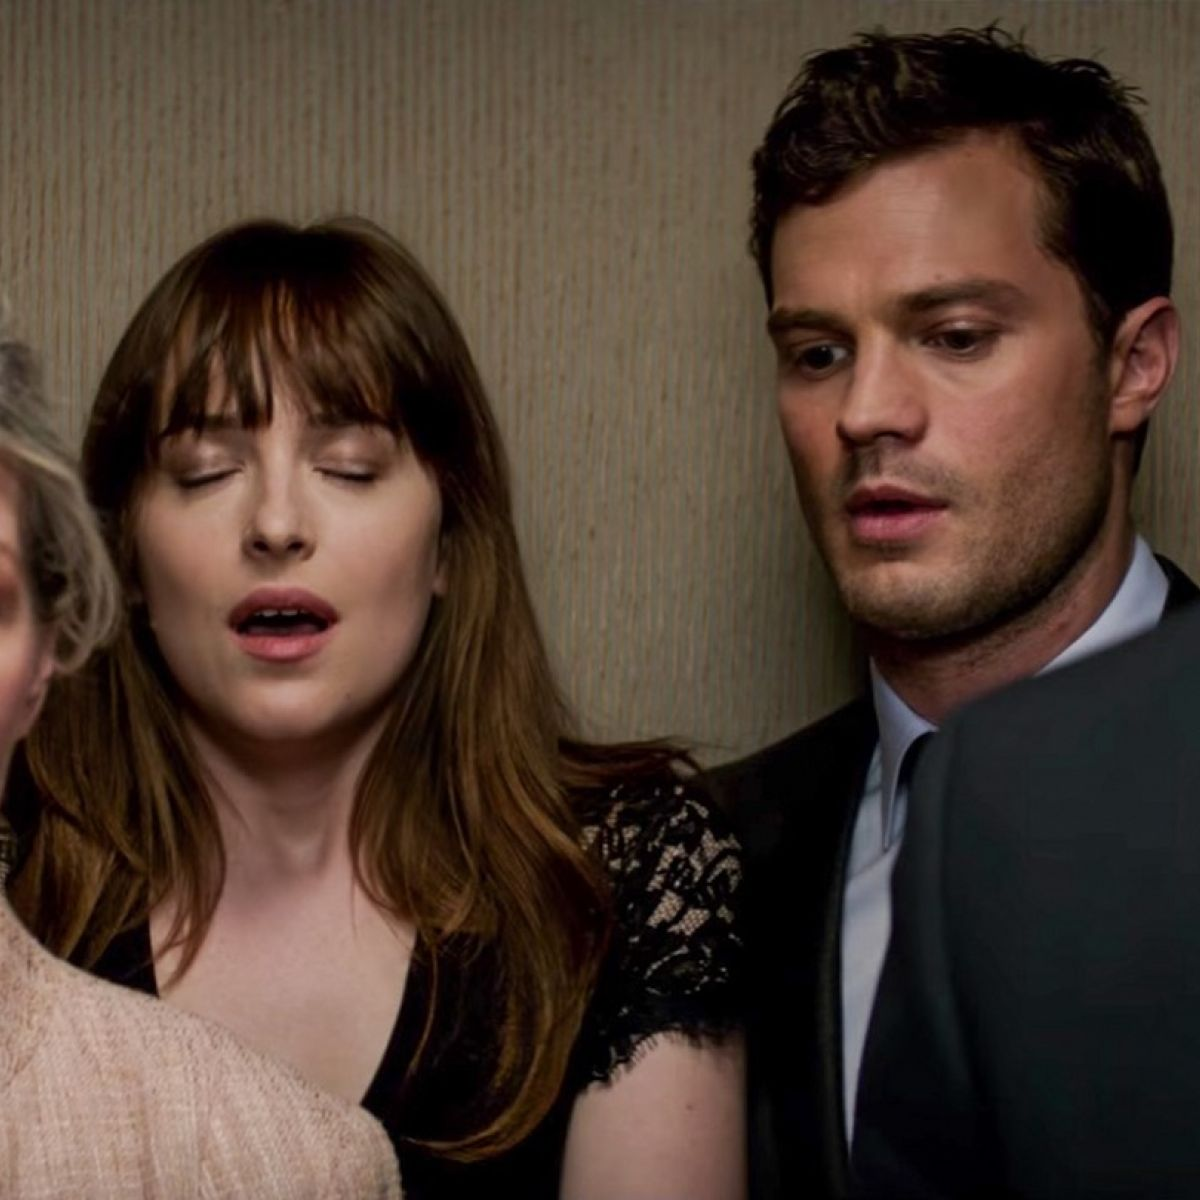 50 shades of grey full movie watch online for free